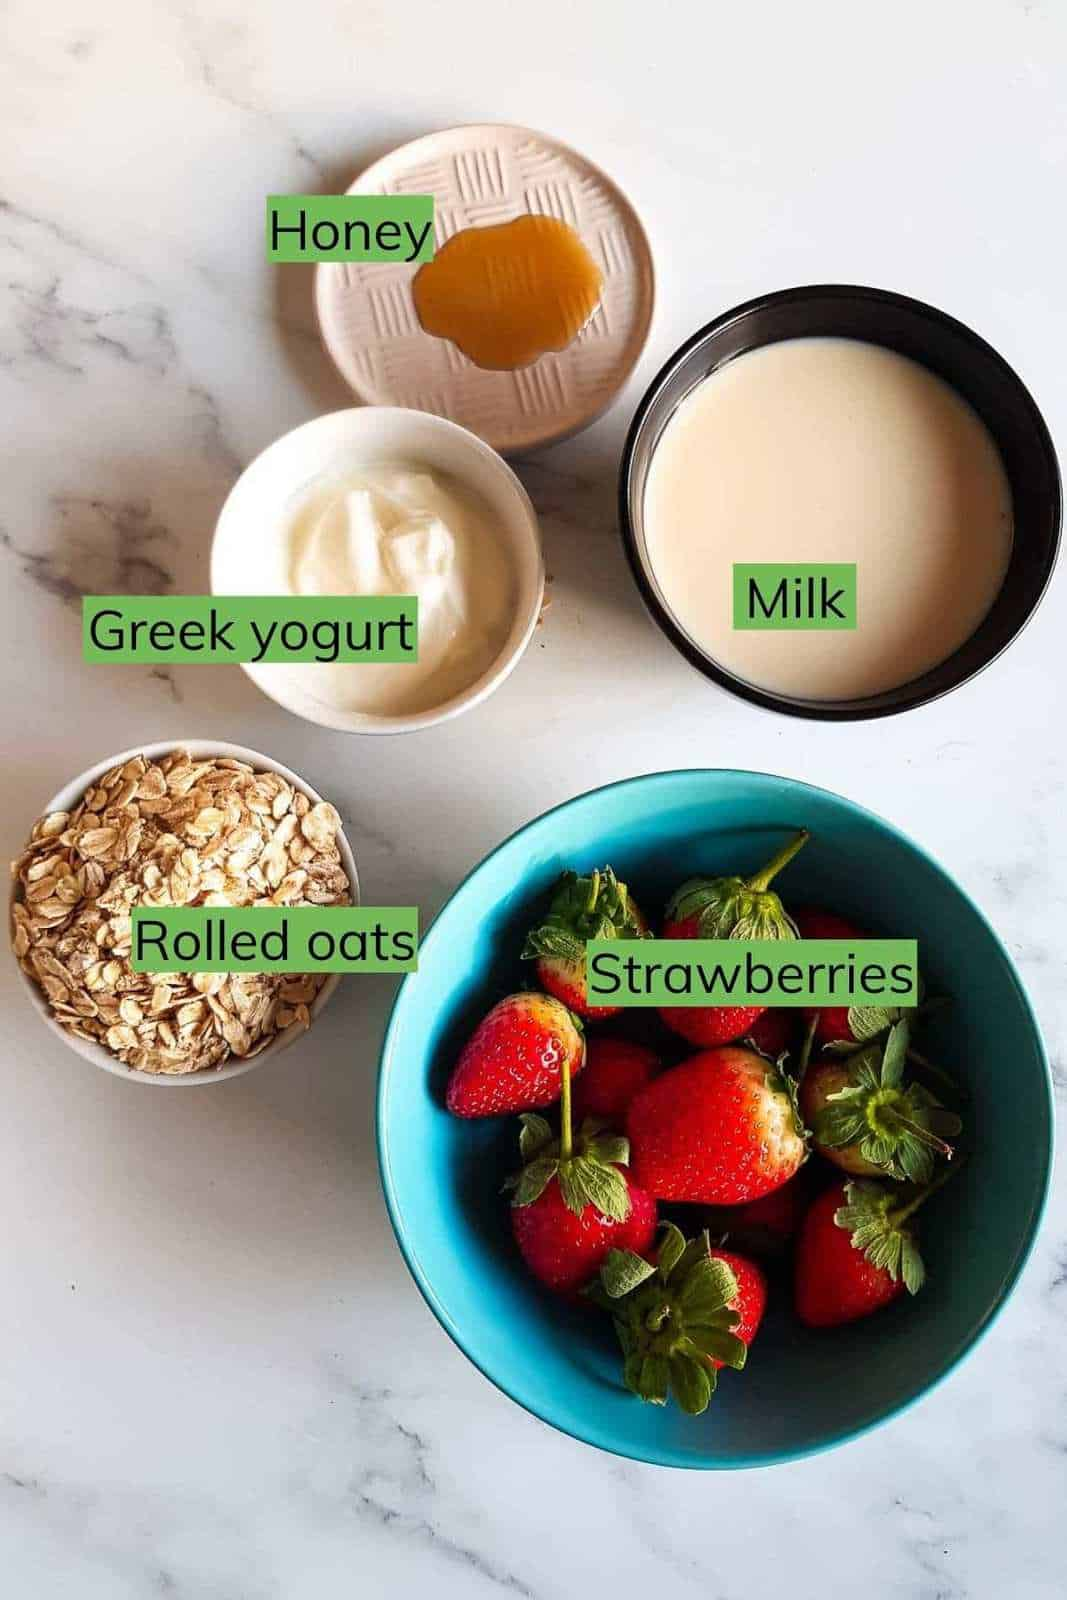 All the ingredients needed to make strawberry overnight oats laid out on a table.